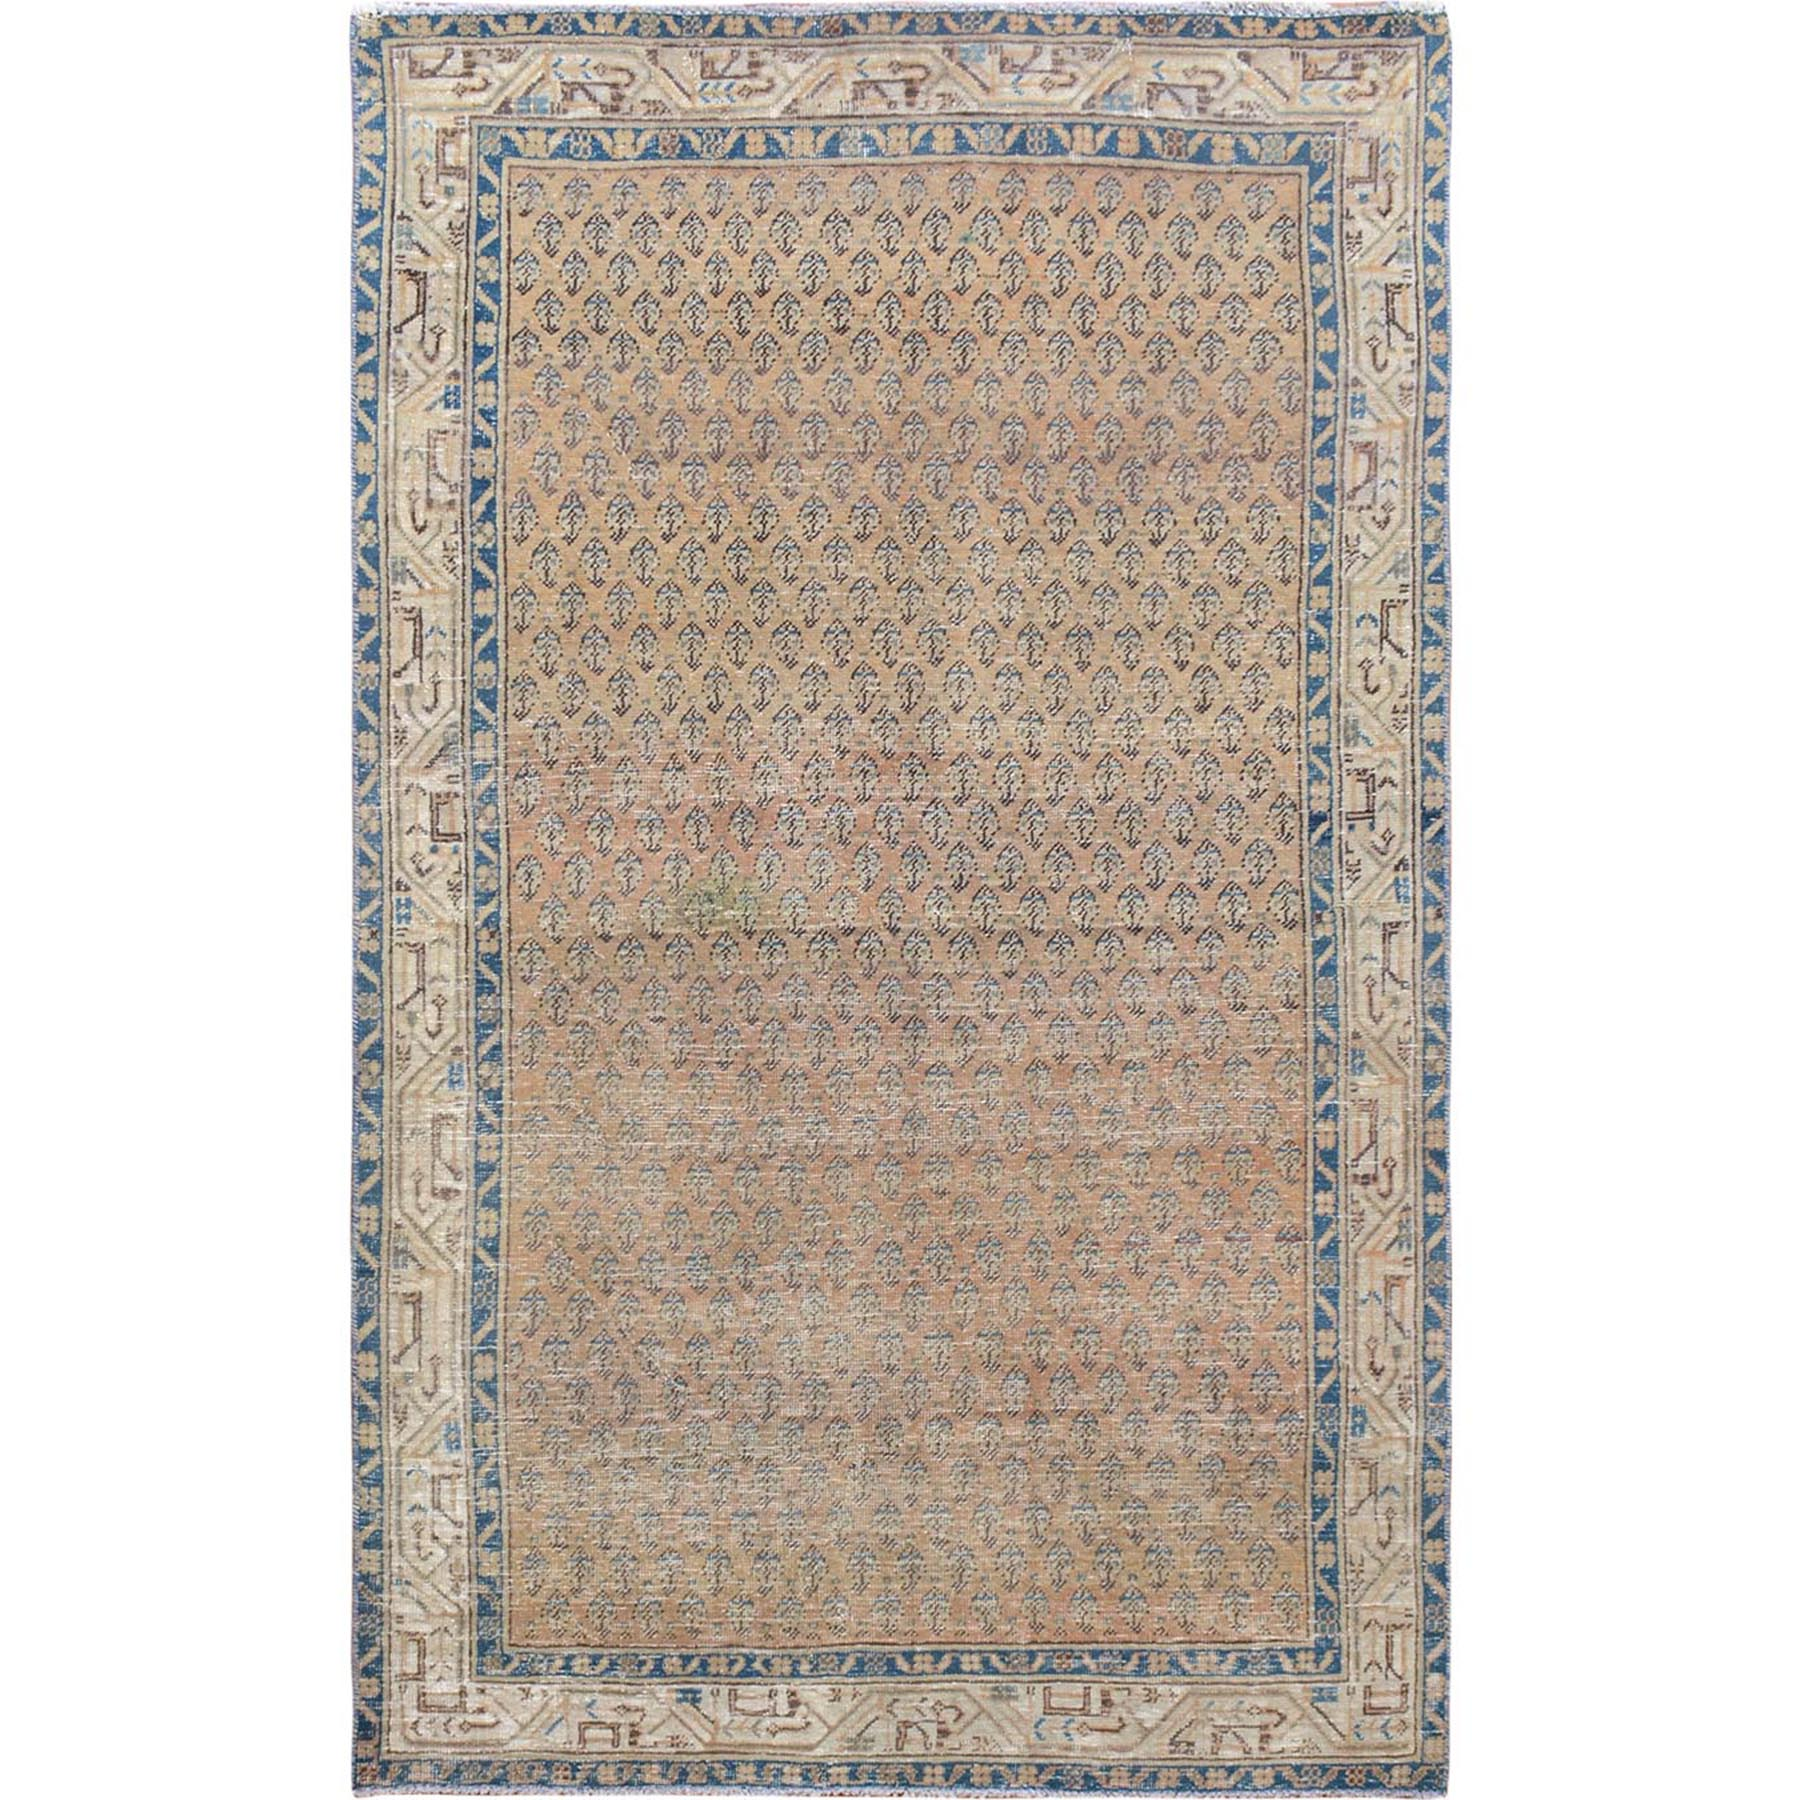 "4'2""x6'10"" Natural Colors Vintage and Worn Down Washed Out Persian Serab Hand Woven Oriental Rug"